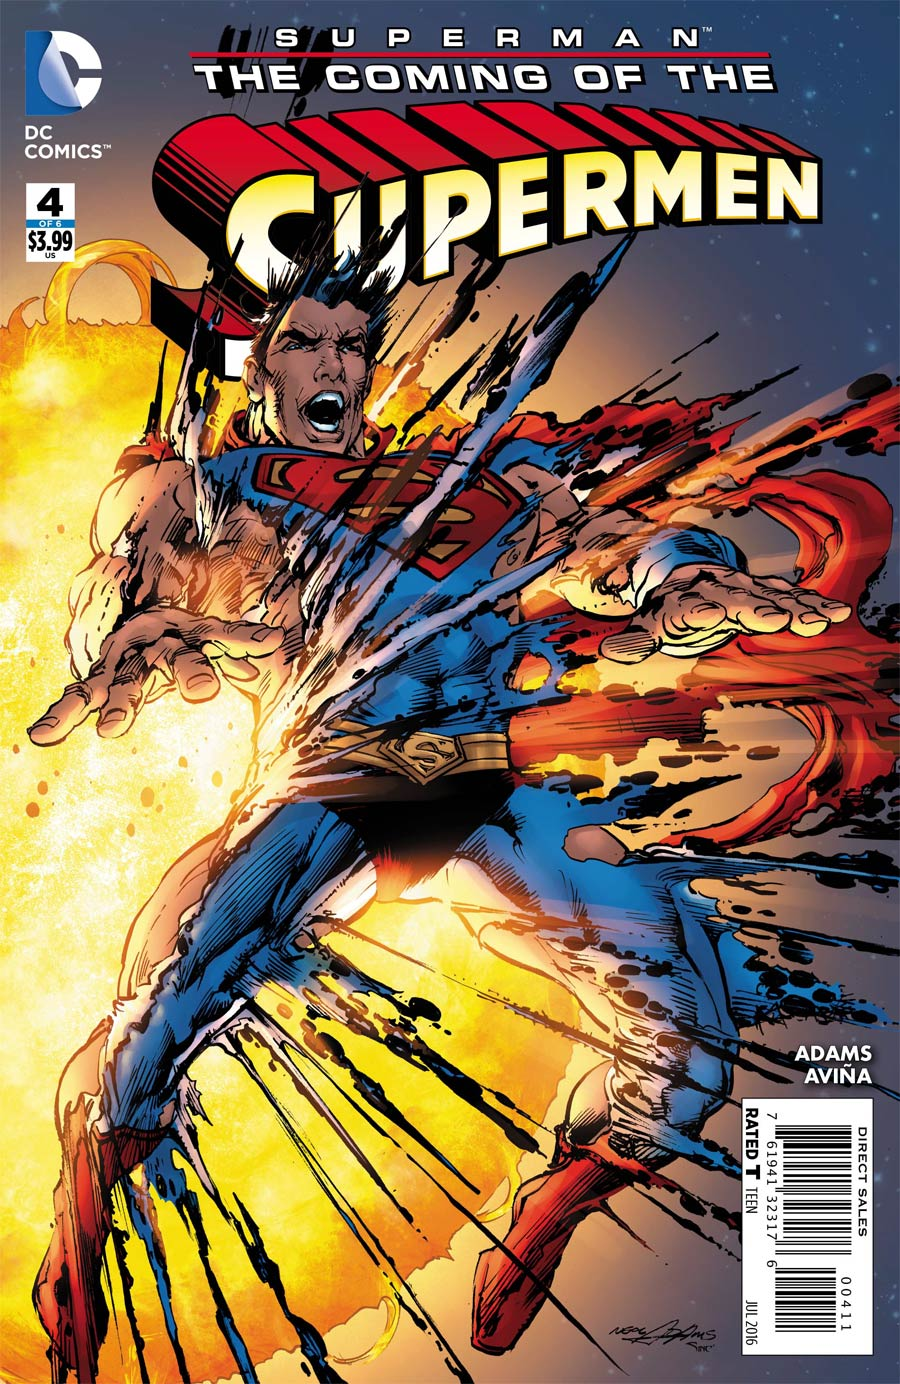 Superman The Coming Of The Supermen #4